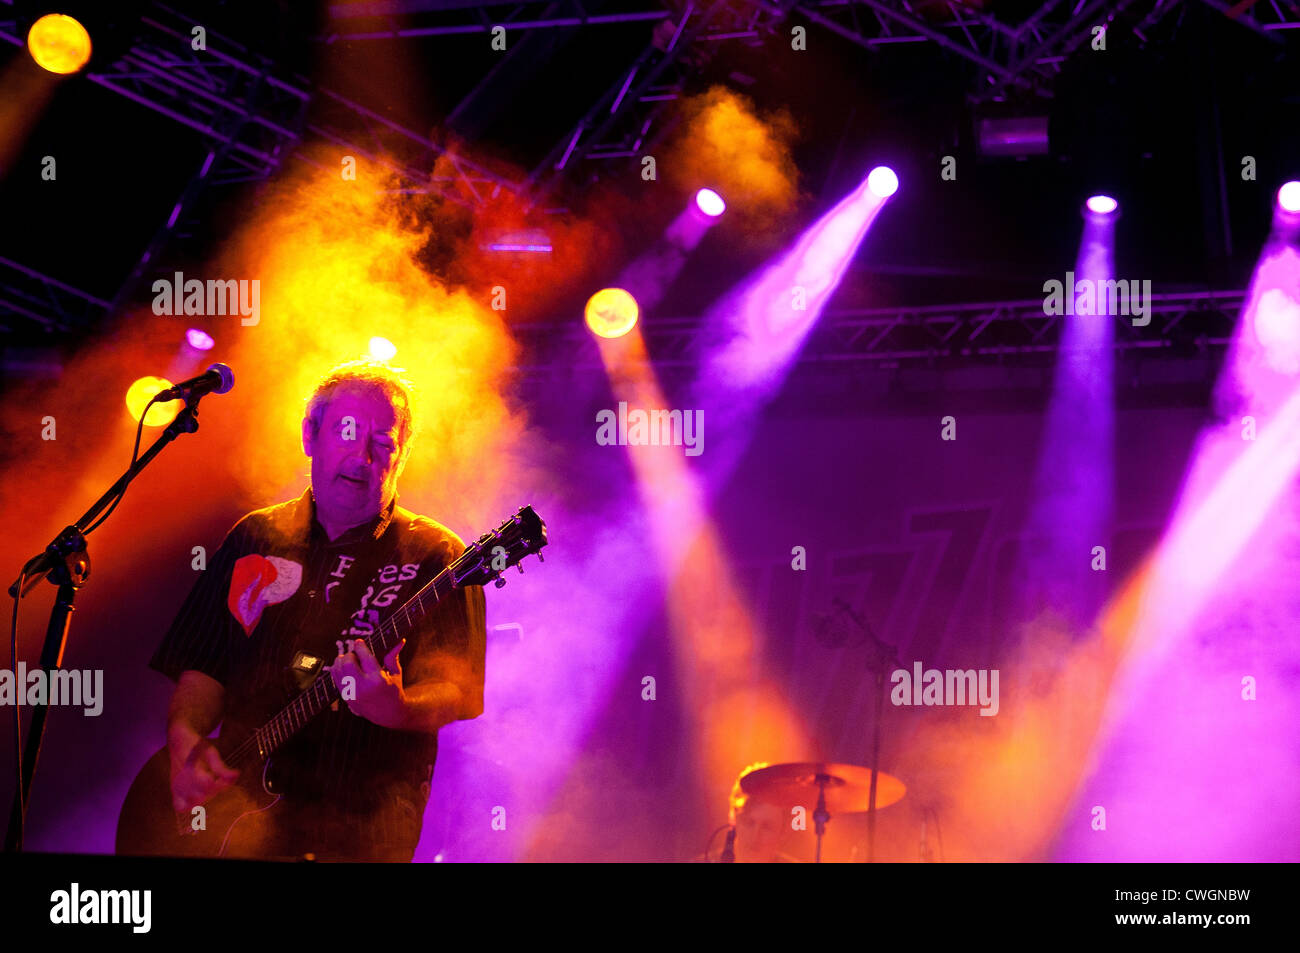 BENICASSIM, SPAIN - JULY 14: Buzzcocks band performs at FIB on July 14, 2012 in Benicassim, Spain. - Stock Image